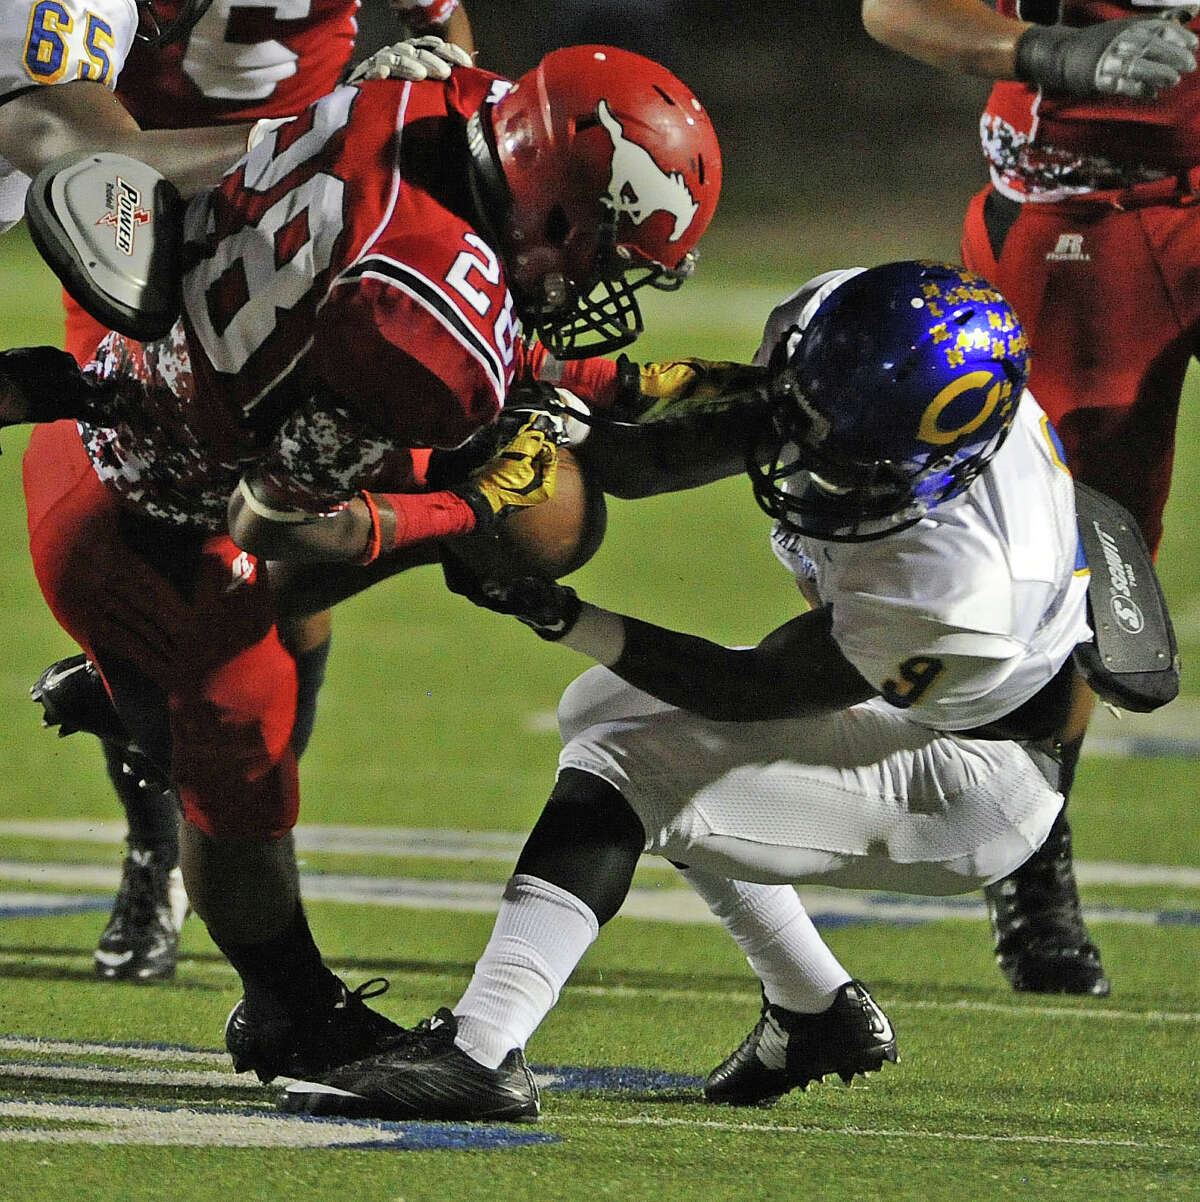 Channelview hopes for a repeat of last year's result against North Shore, when a Hail Mary on the game's final play capped the Falcons' 49-48 win. It was North Shore's only district loss, but the victory was not enough for Channelview to make the playoffs. The Falcons have more on the line this week because once again they are behind in the race for the playoffs after losing last week to West Brook, which lost to North Shore. Kickoff is 7 p.m. Friday at Channelview's Maddry Stadium.